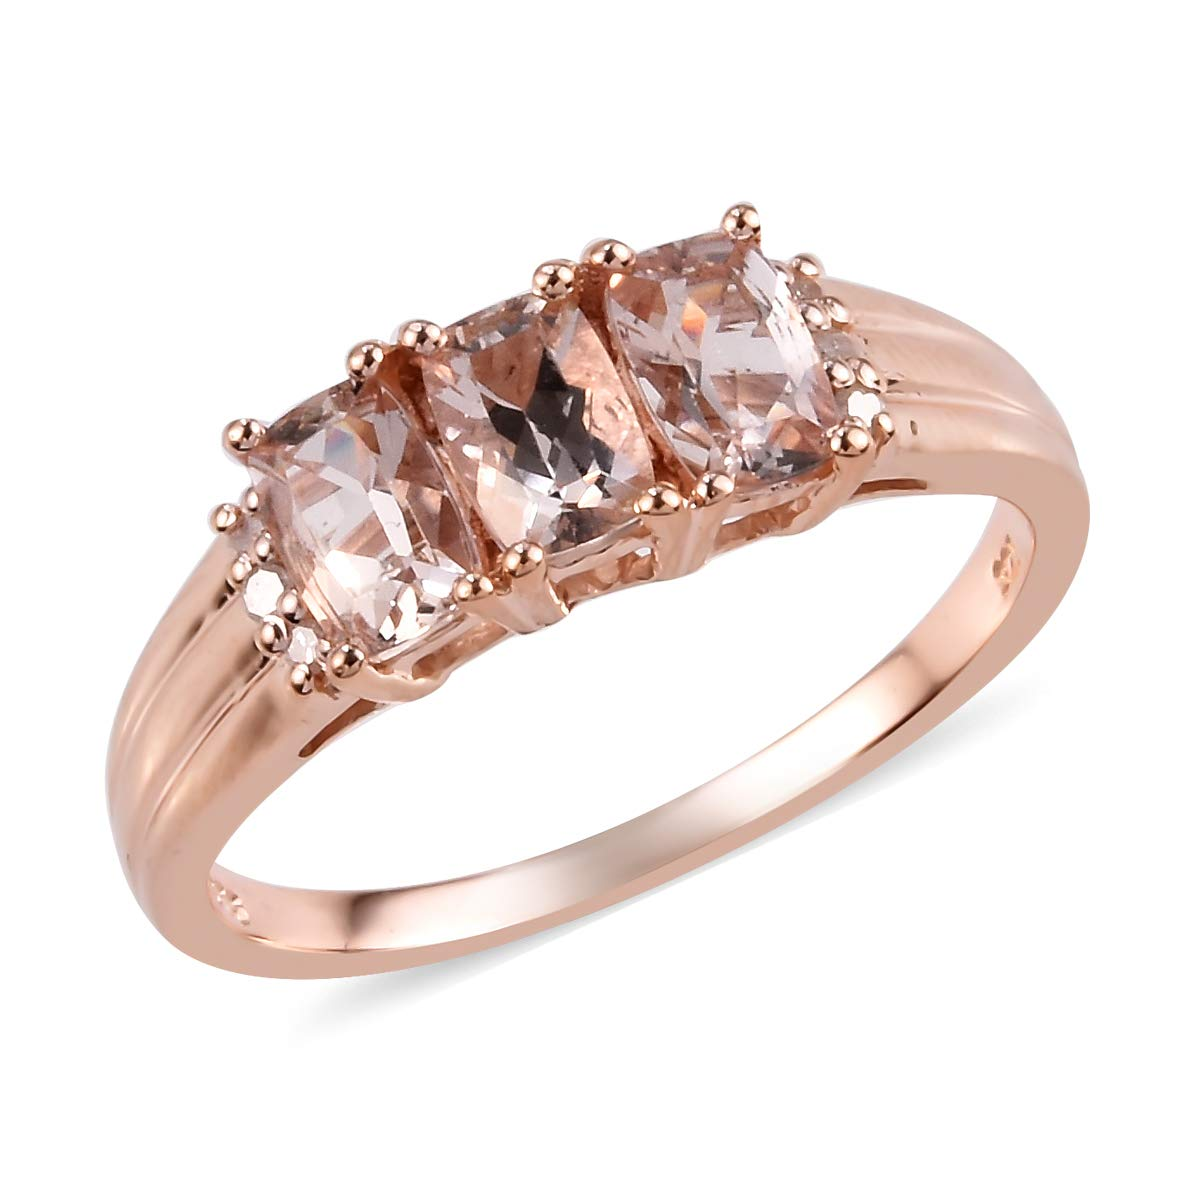 Morganite Diamond Promise Ring 925 Sterling Silver Vermeil Rose Gold Jewelry for Women Size 6 Ct 1.2